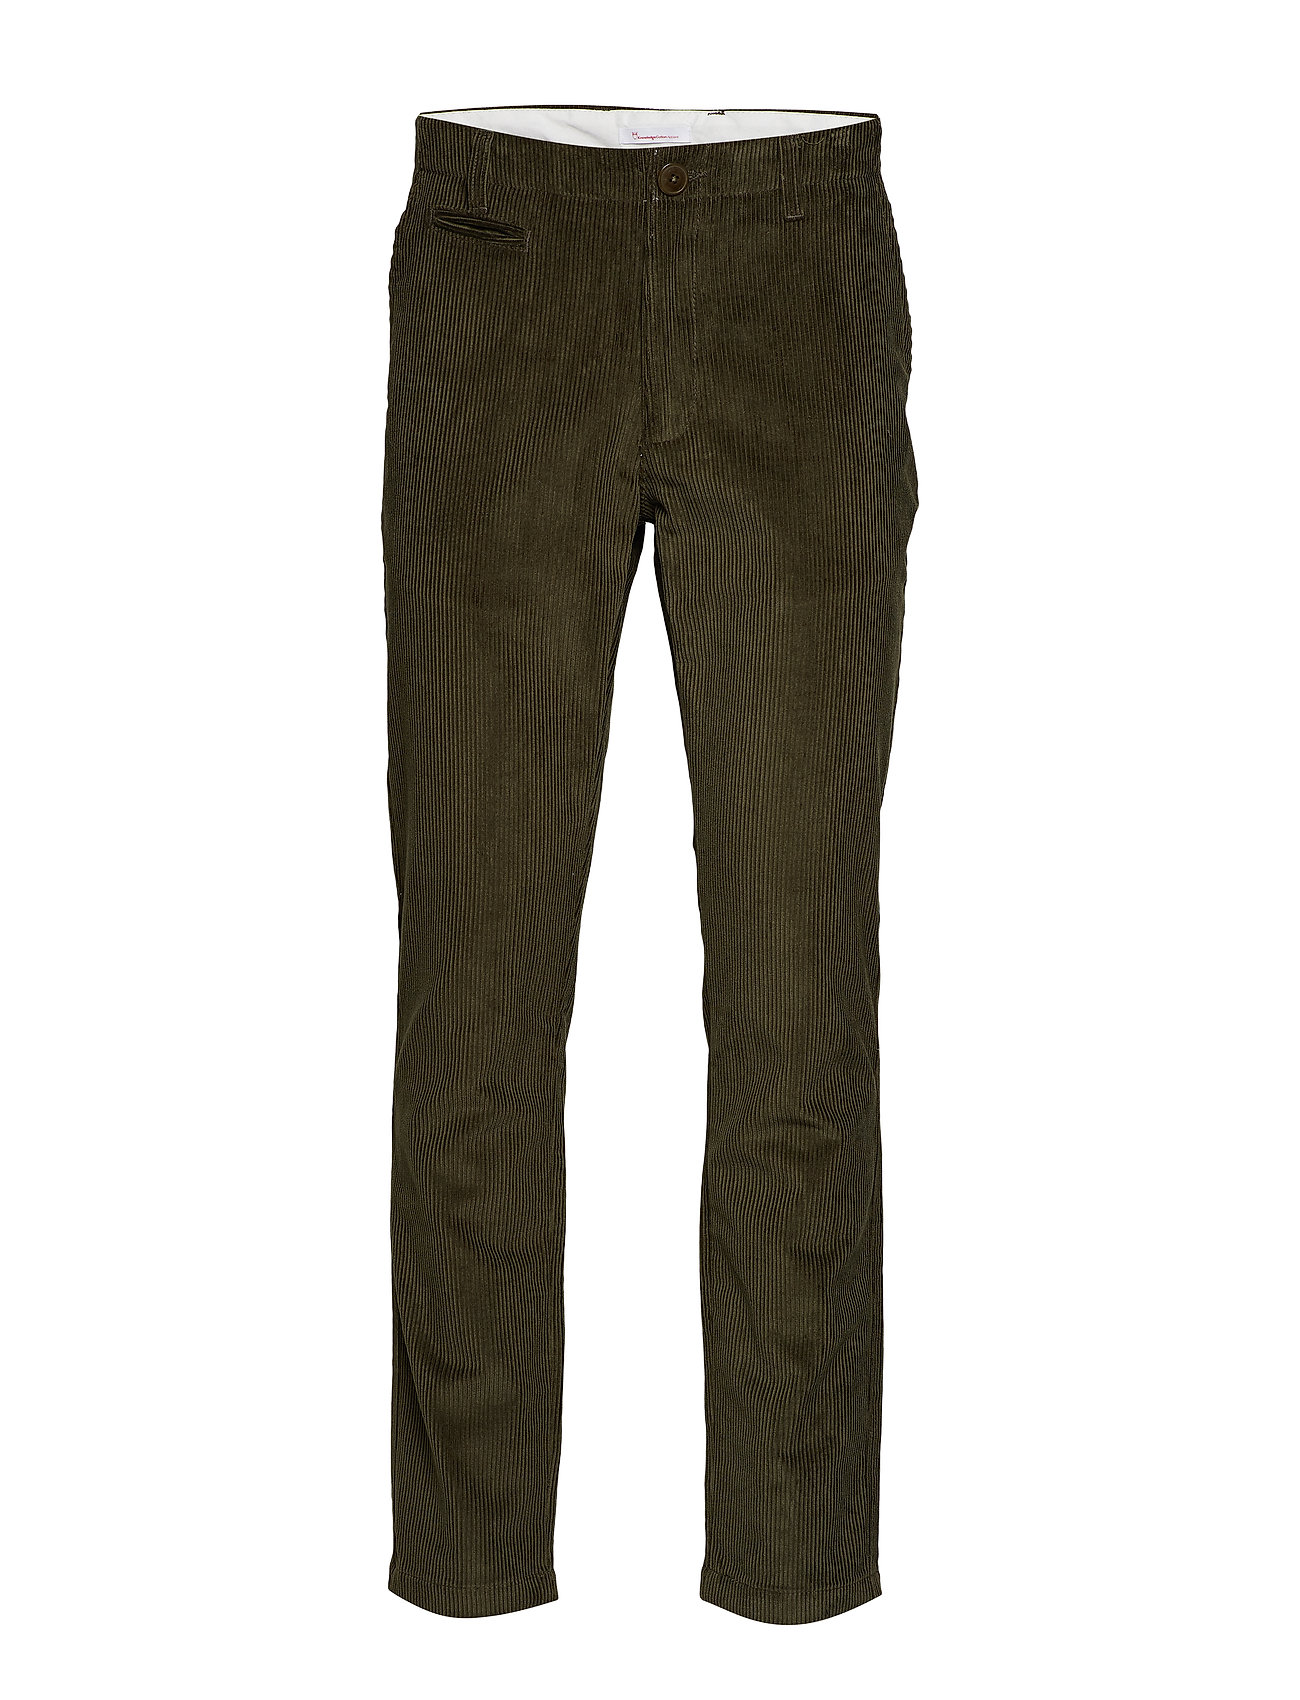 Knowledge Cotton Apparel Chuck 8 Wales Corduroy Chinos - GOT - FORREST NIGHT